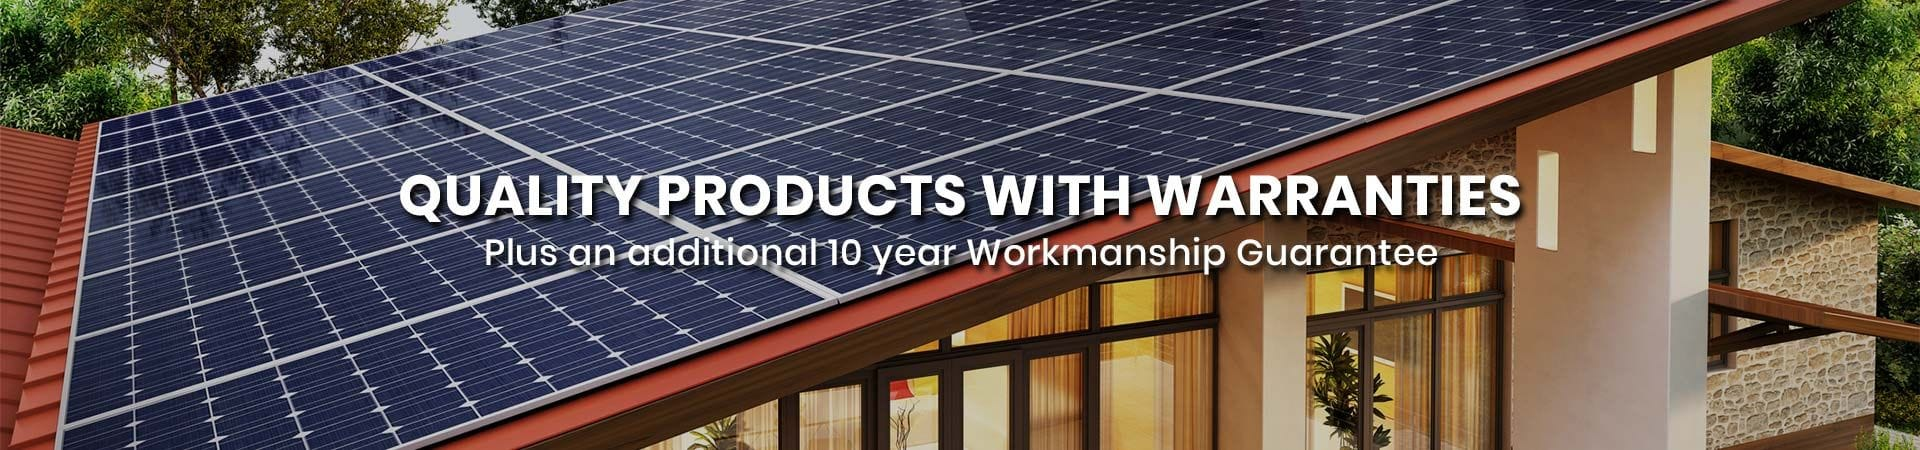 Residential Solar Panels and Solar Systems QLD NSW